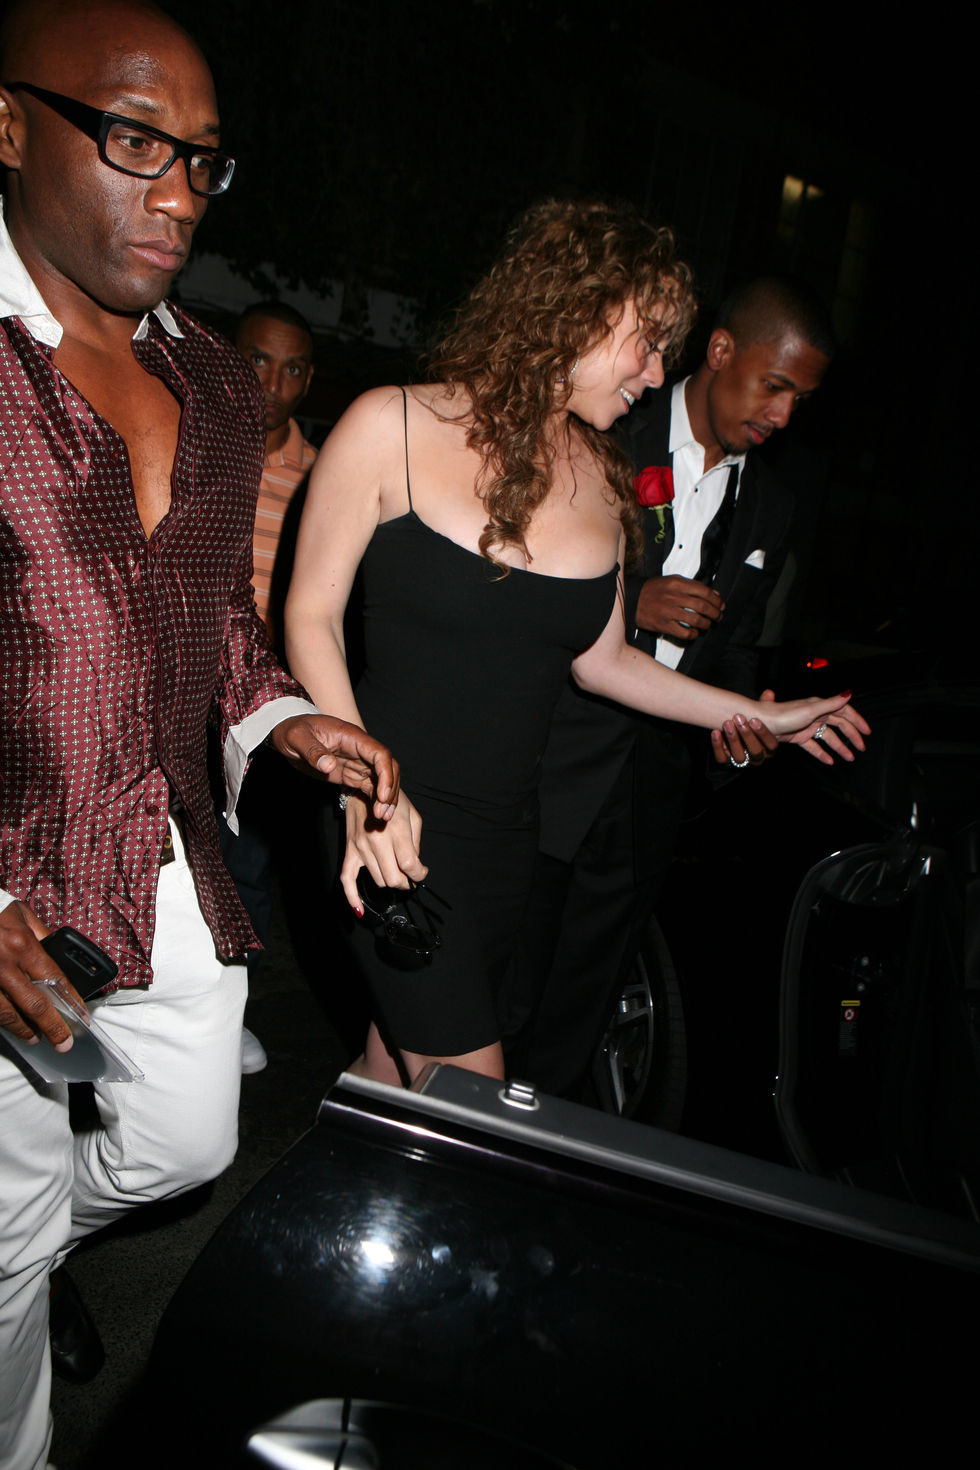 mariah-carey-at-mr-chow-in-beverly-hills-2-01